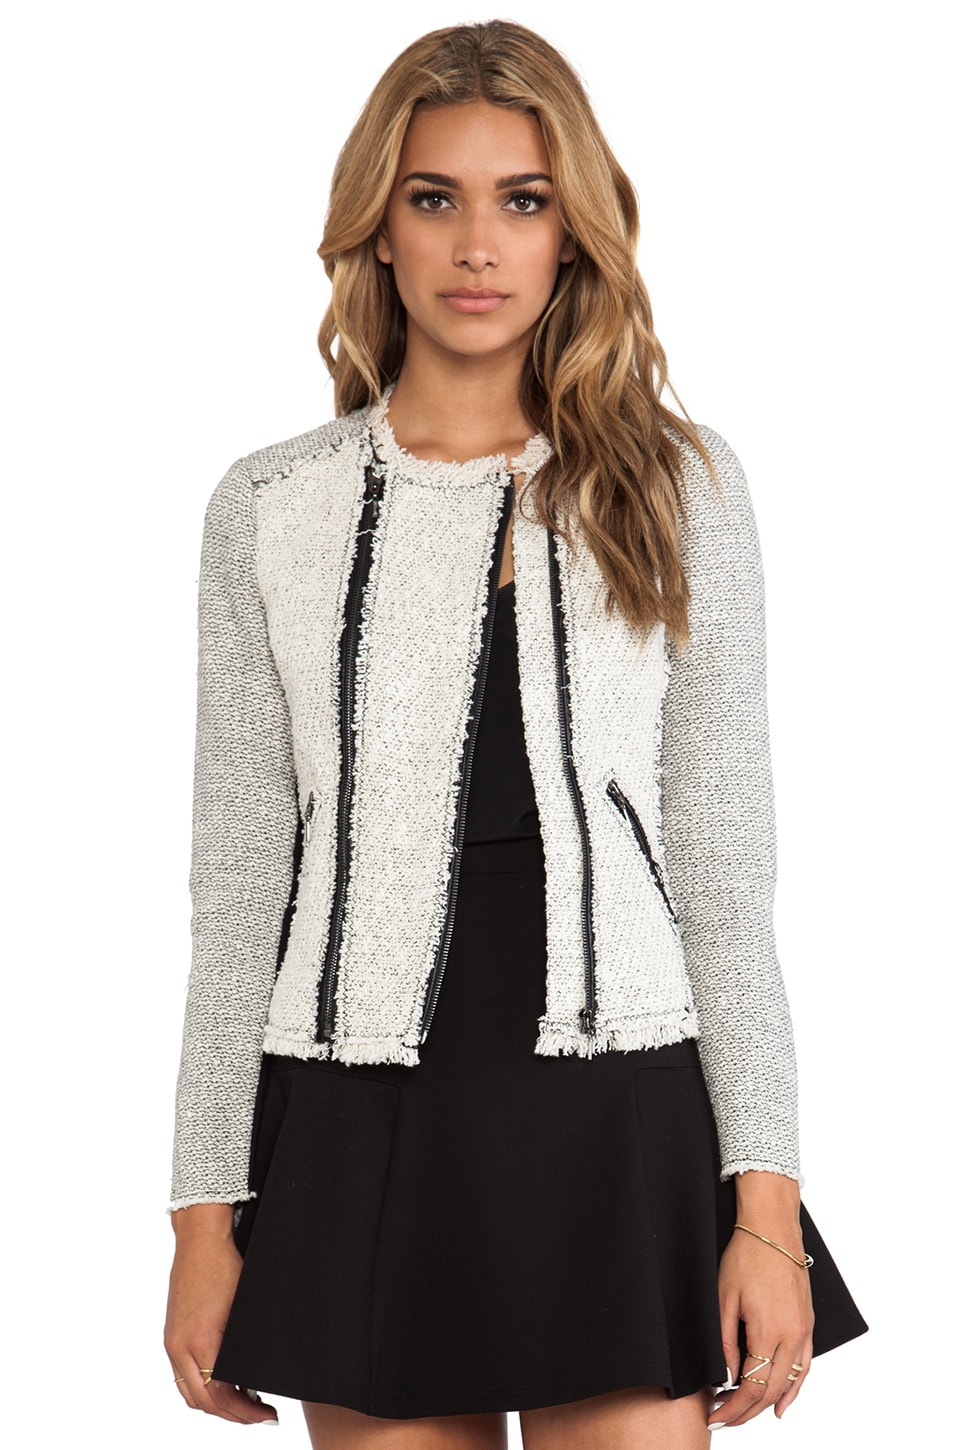 Rebecca Taylor Tweed Jacket in Pece